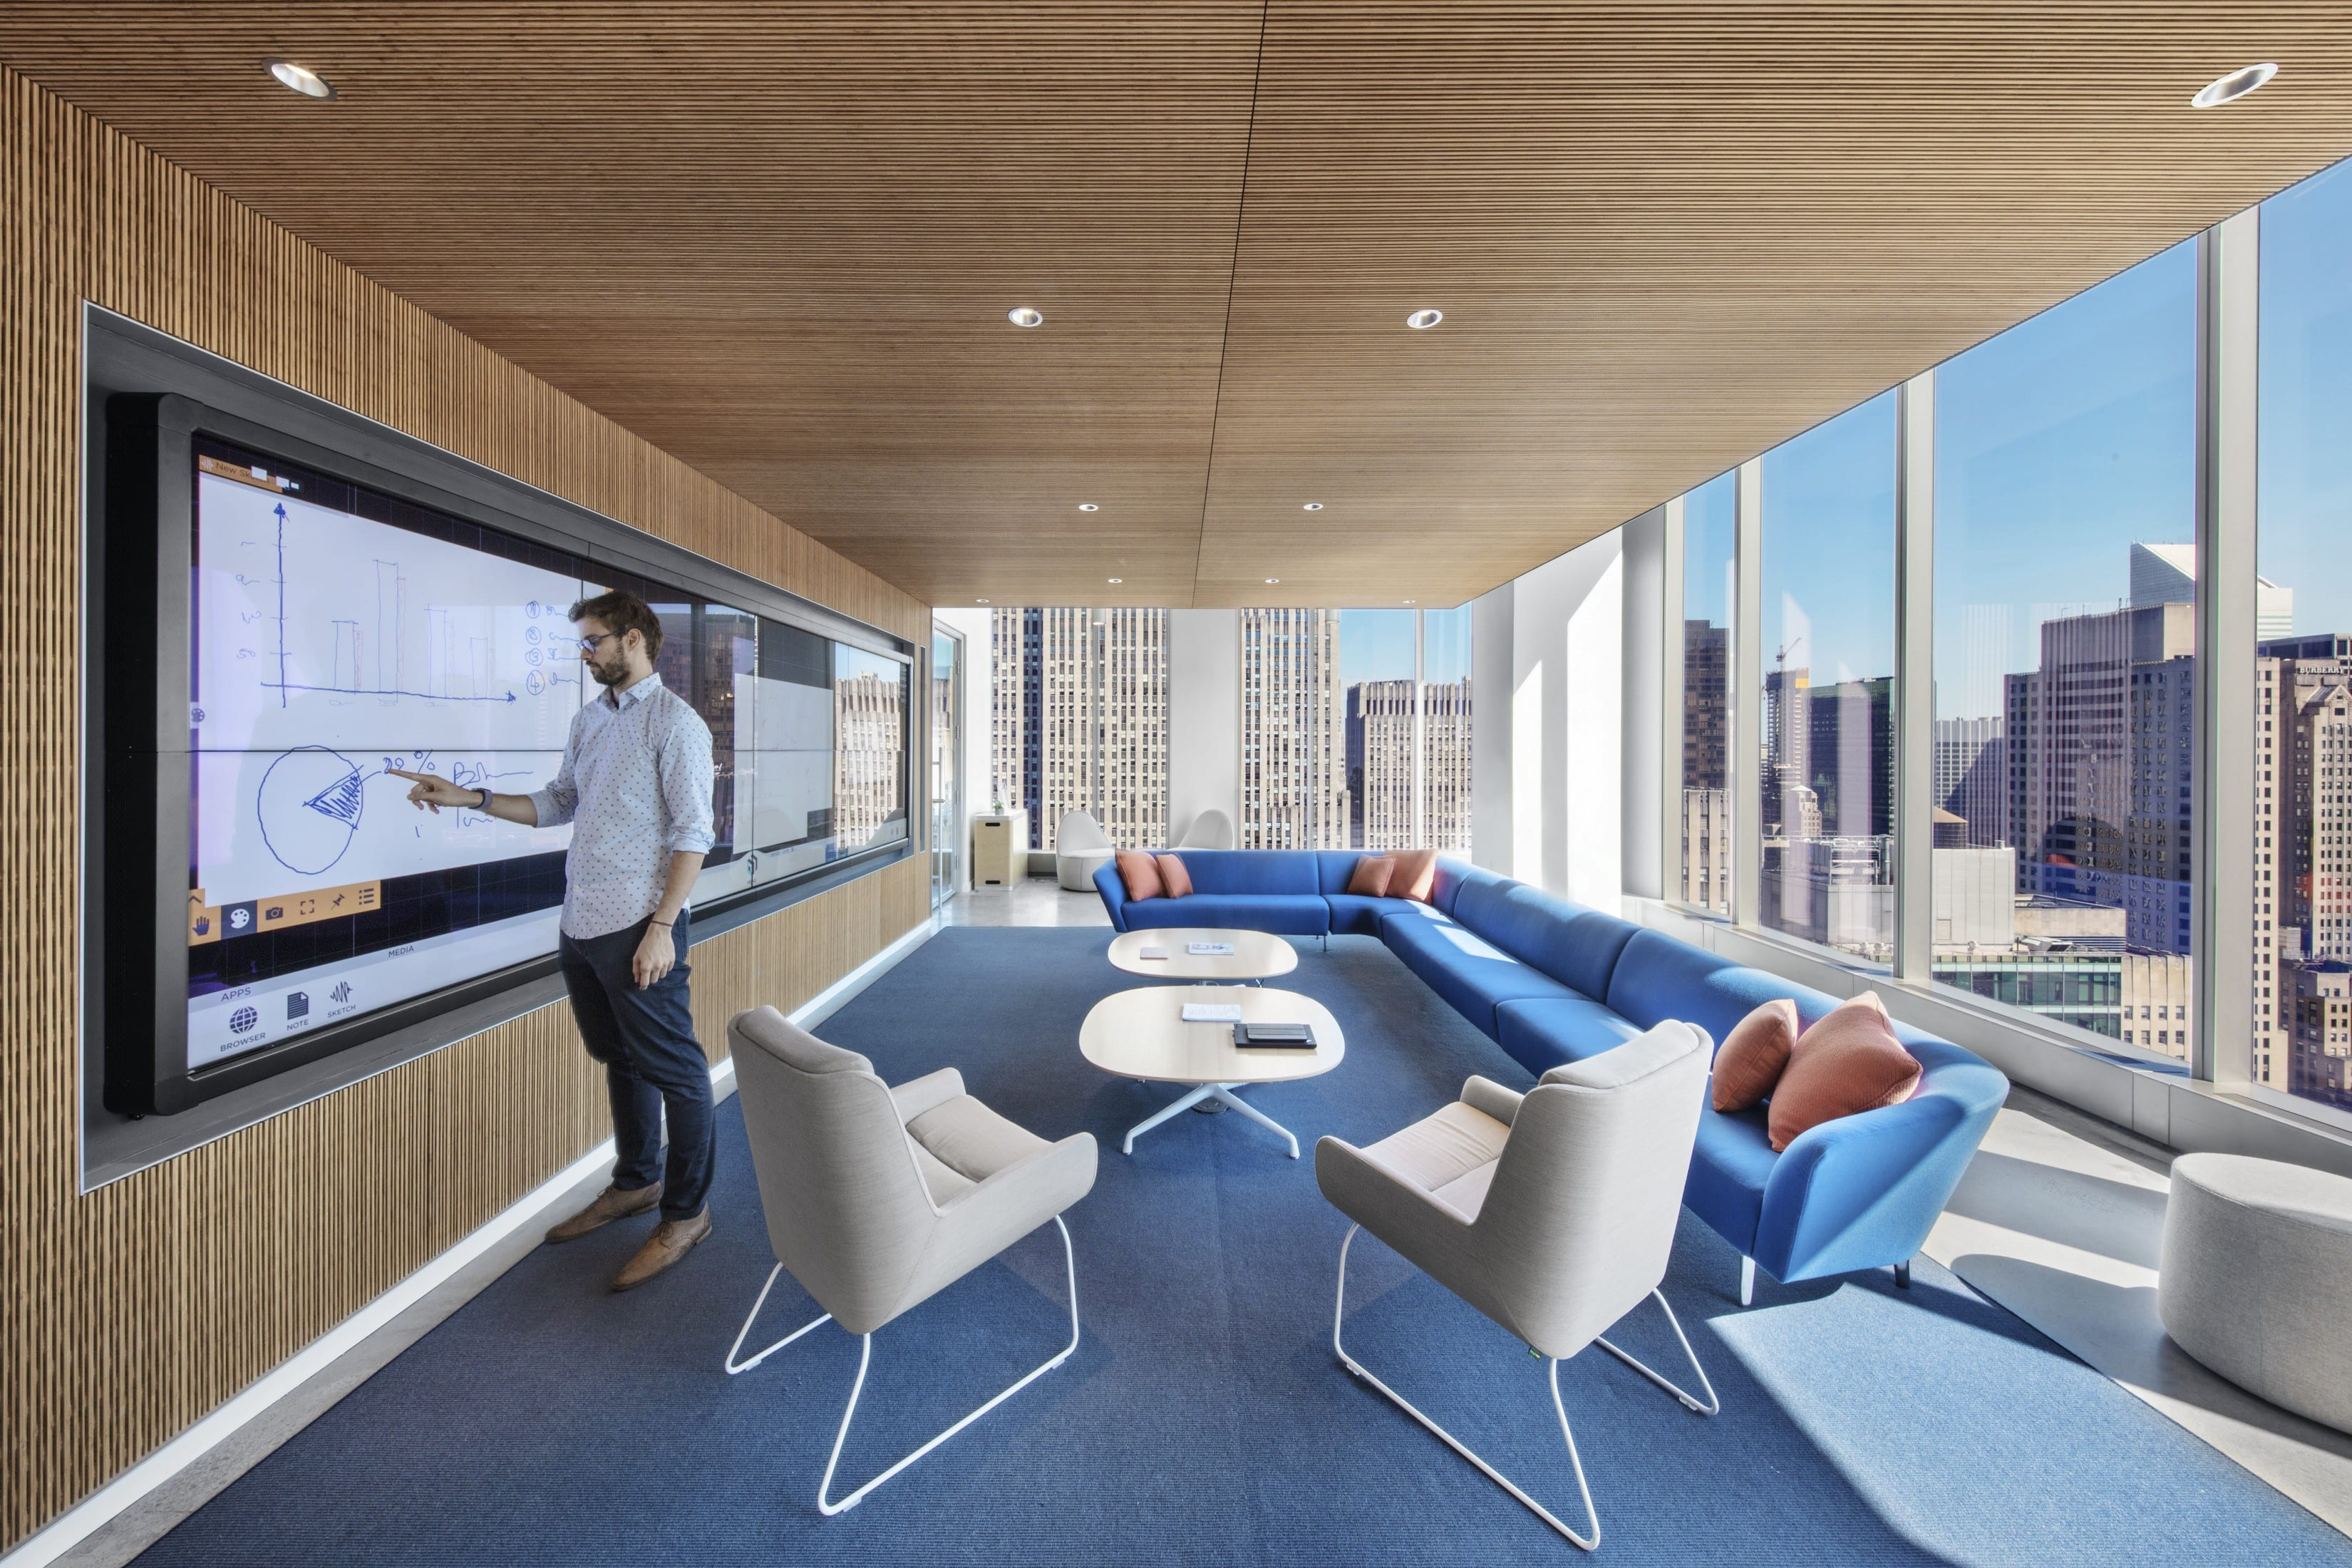 Informal workspace at the Comcast Spotlight offices